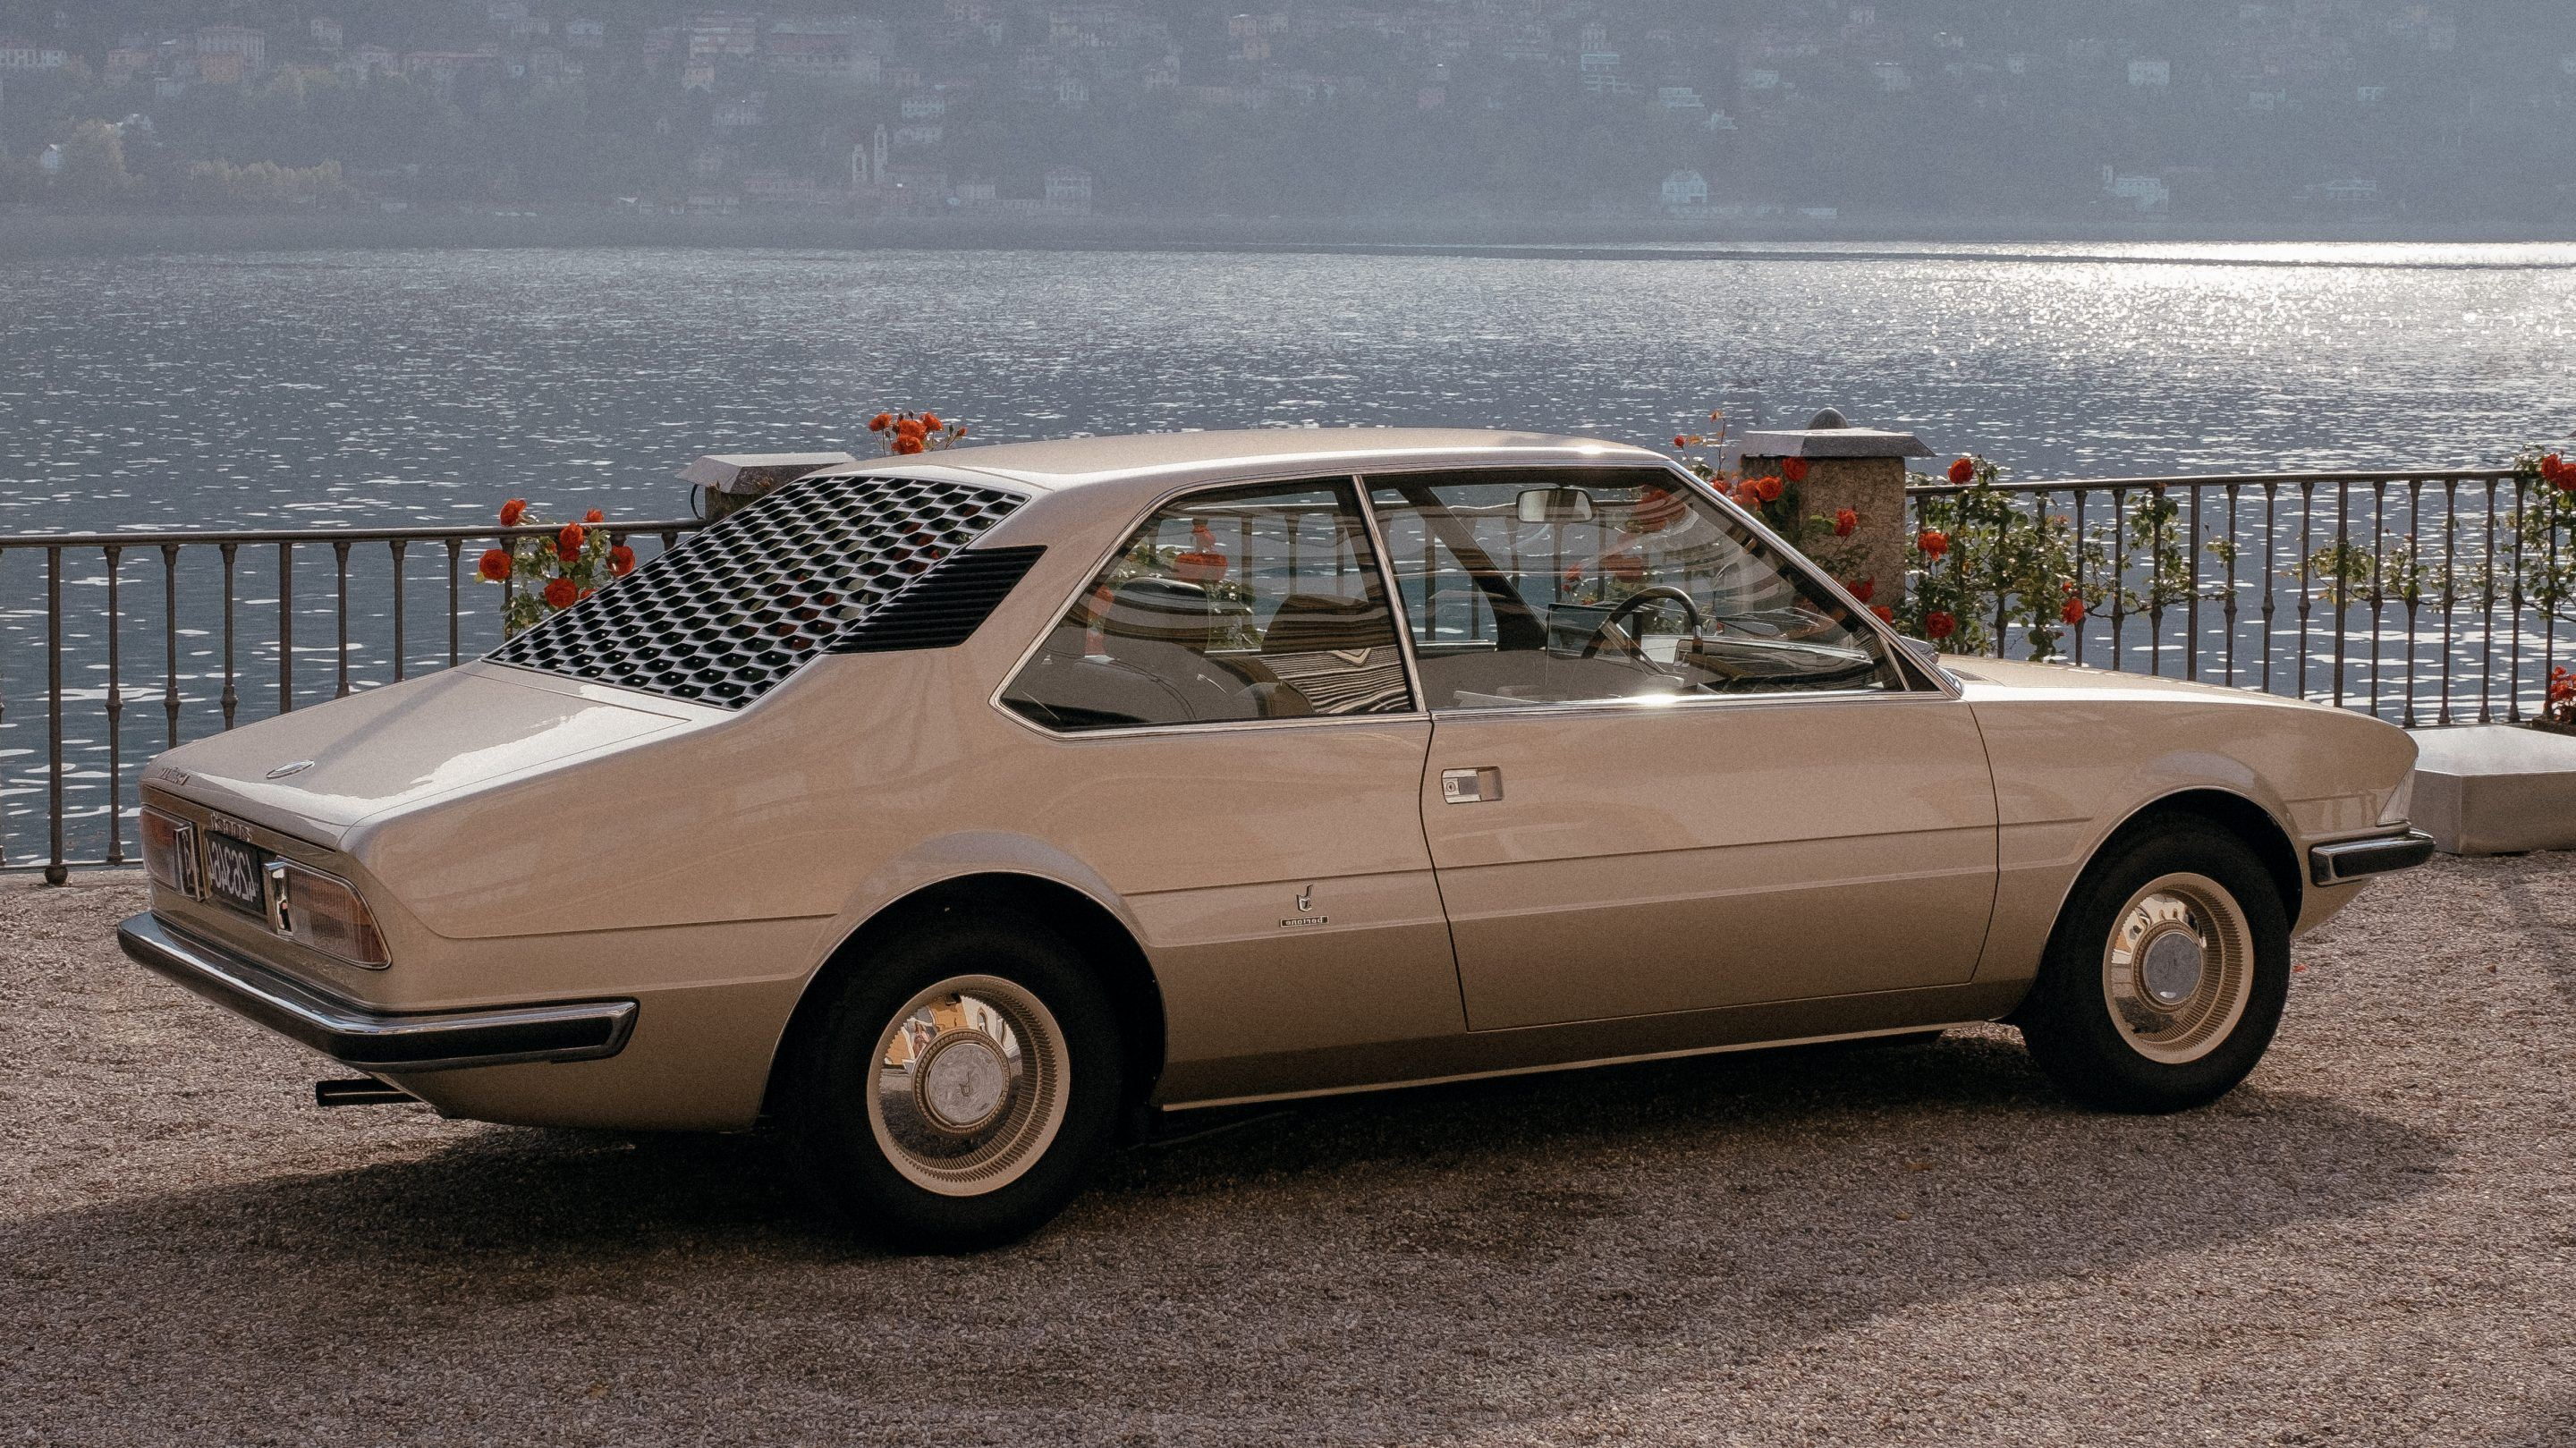 beside-lake-como-classic-concepts-meet-retro-futures-at-this-years-concorso-deleganza-3